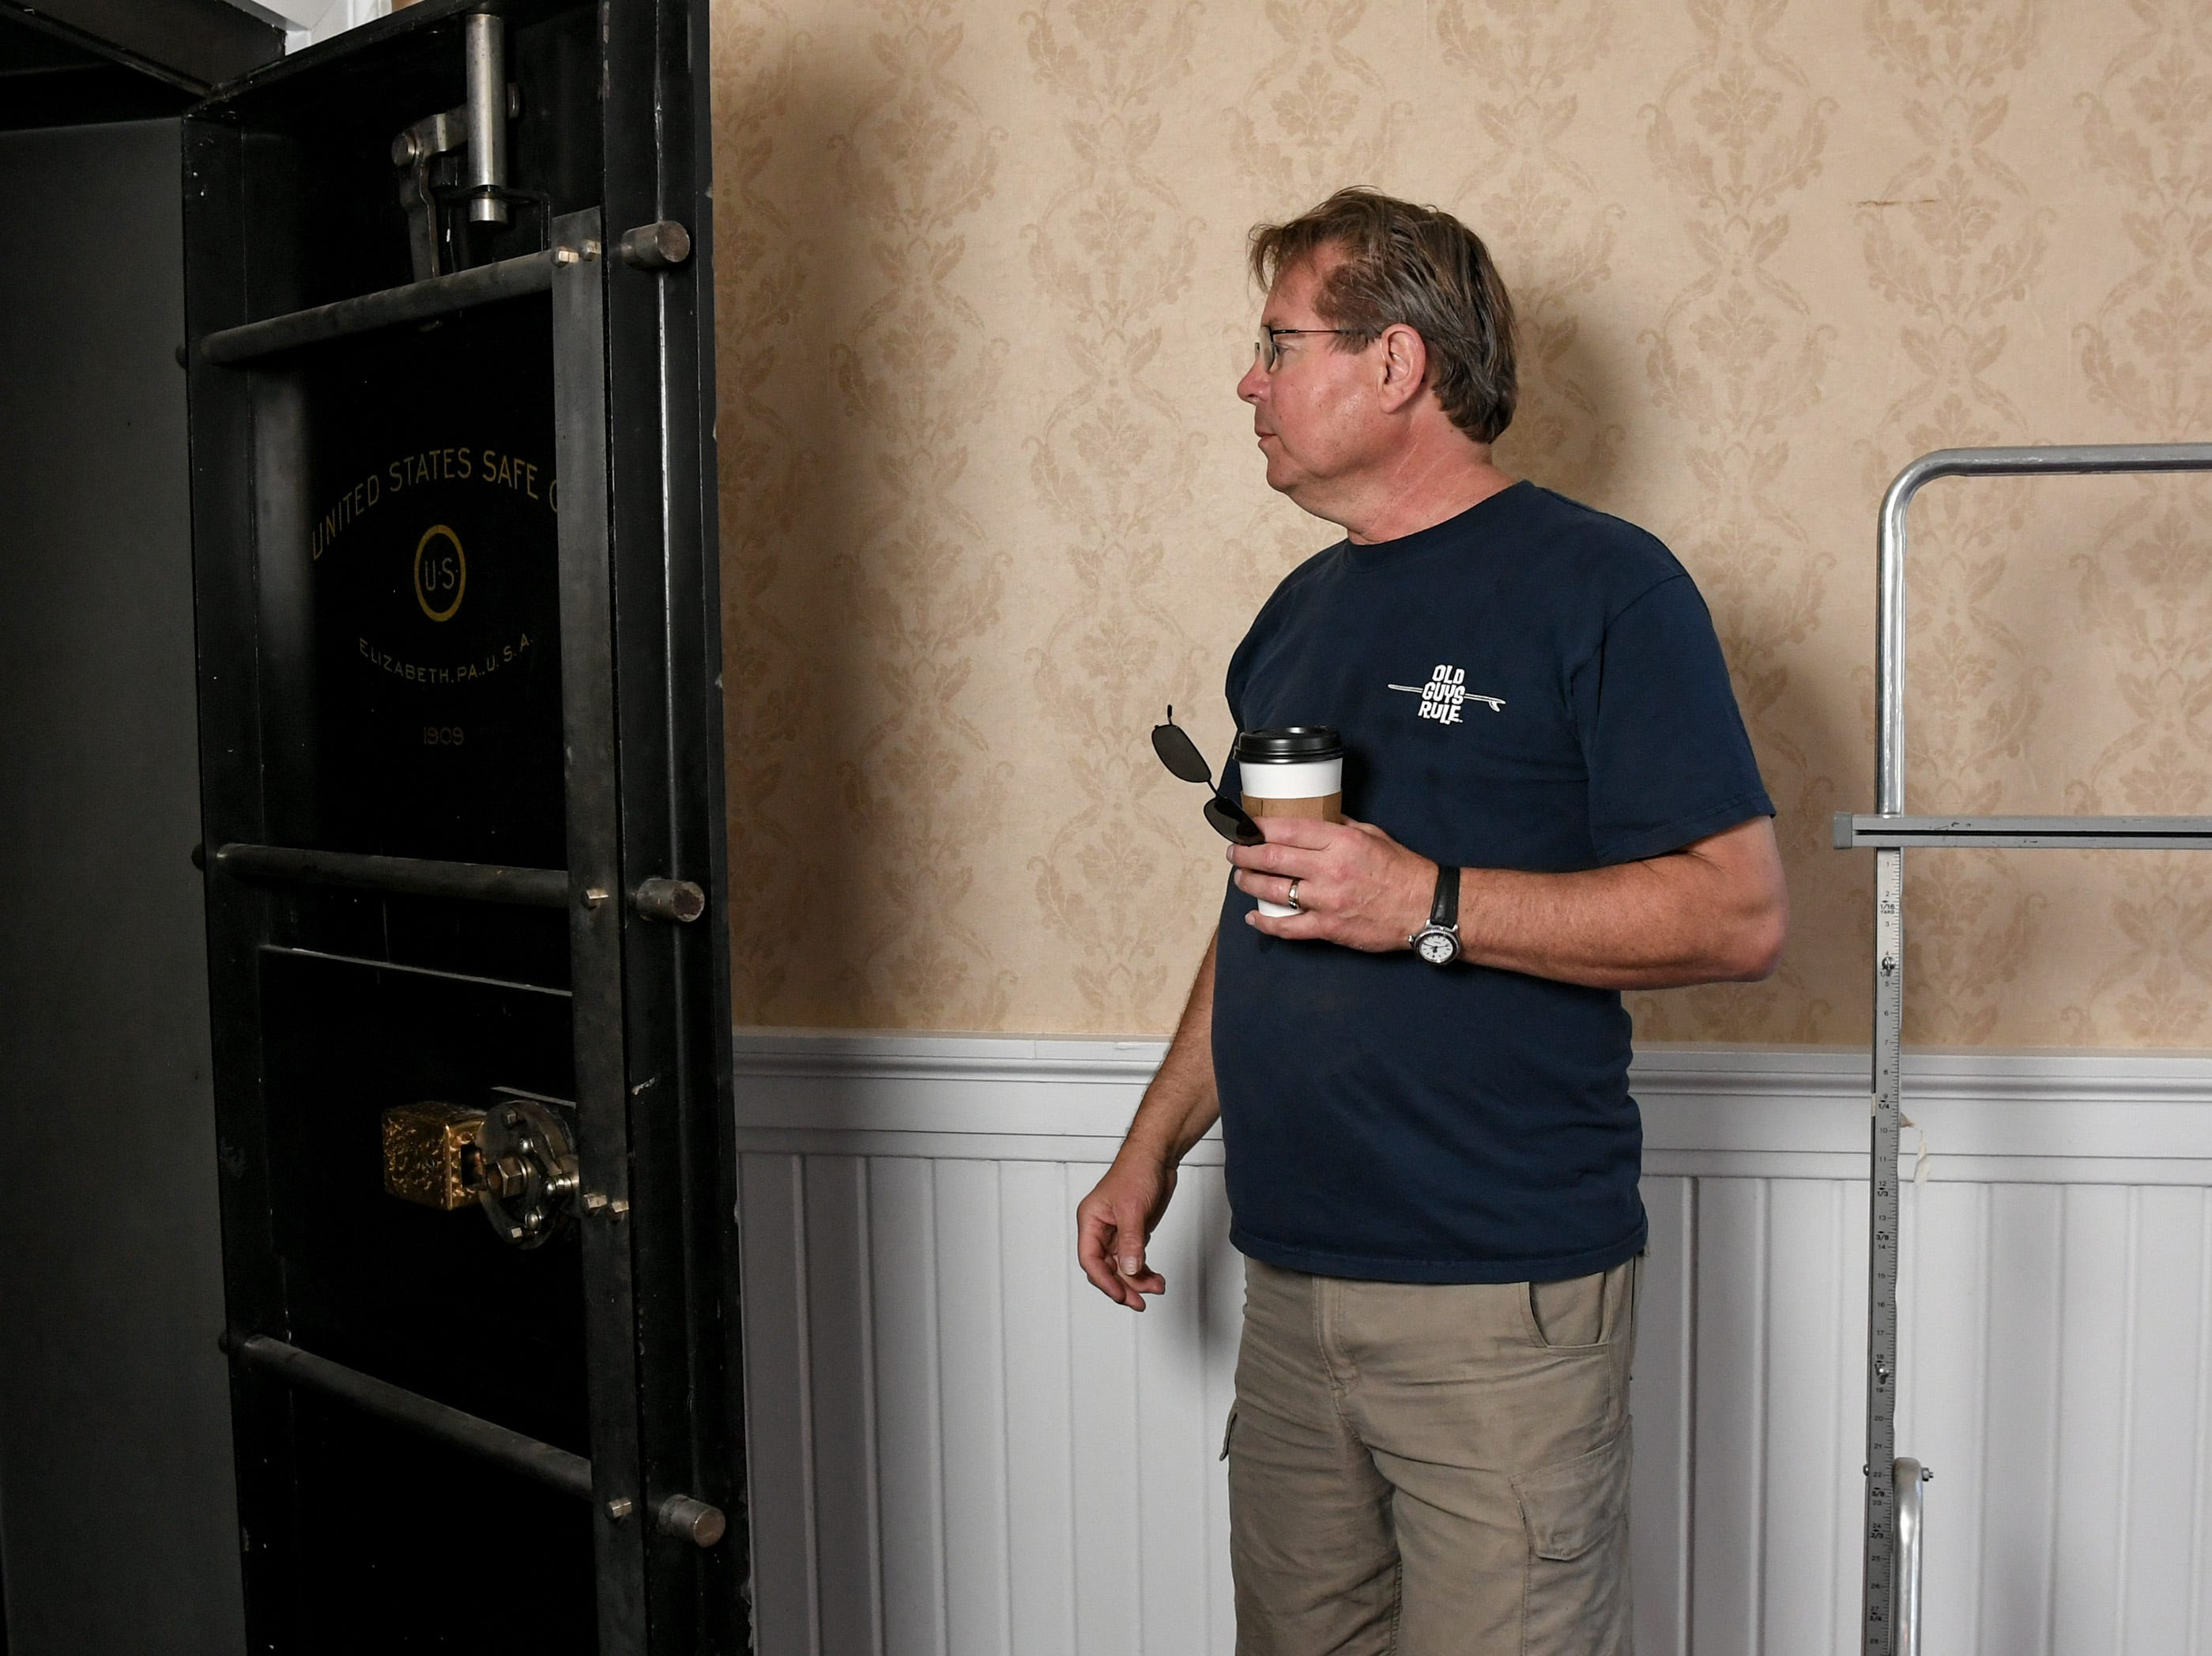 Rick Kummrow looks at an old safe used when a United States Post office was in the building at 401 North Main Street in downtown Anderson. Rick and Ann Kummrow pitched their plan to create The Historic Postmark Anderson, a mix of housing upstairs, retail on the main floor, and possibly a restaurant downstairs. The structure built in 1909 was previously a funeral home, and before that a United States Post Office.